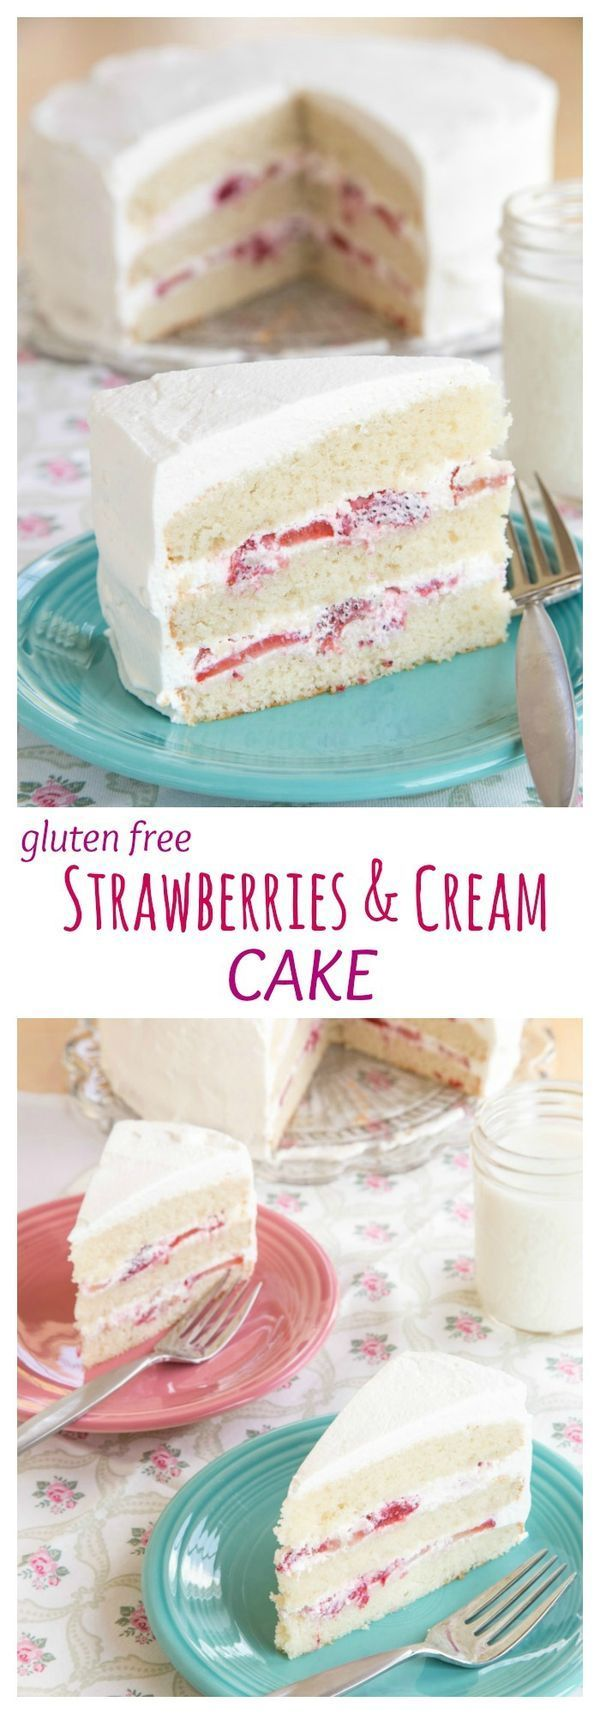 Gluten Free Strawberries and Cream Cake - a family favorite dessert recipe! Layers of white cake, sweet berries, and homemade whipped cream.